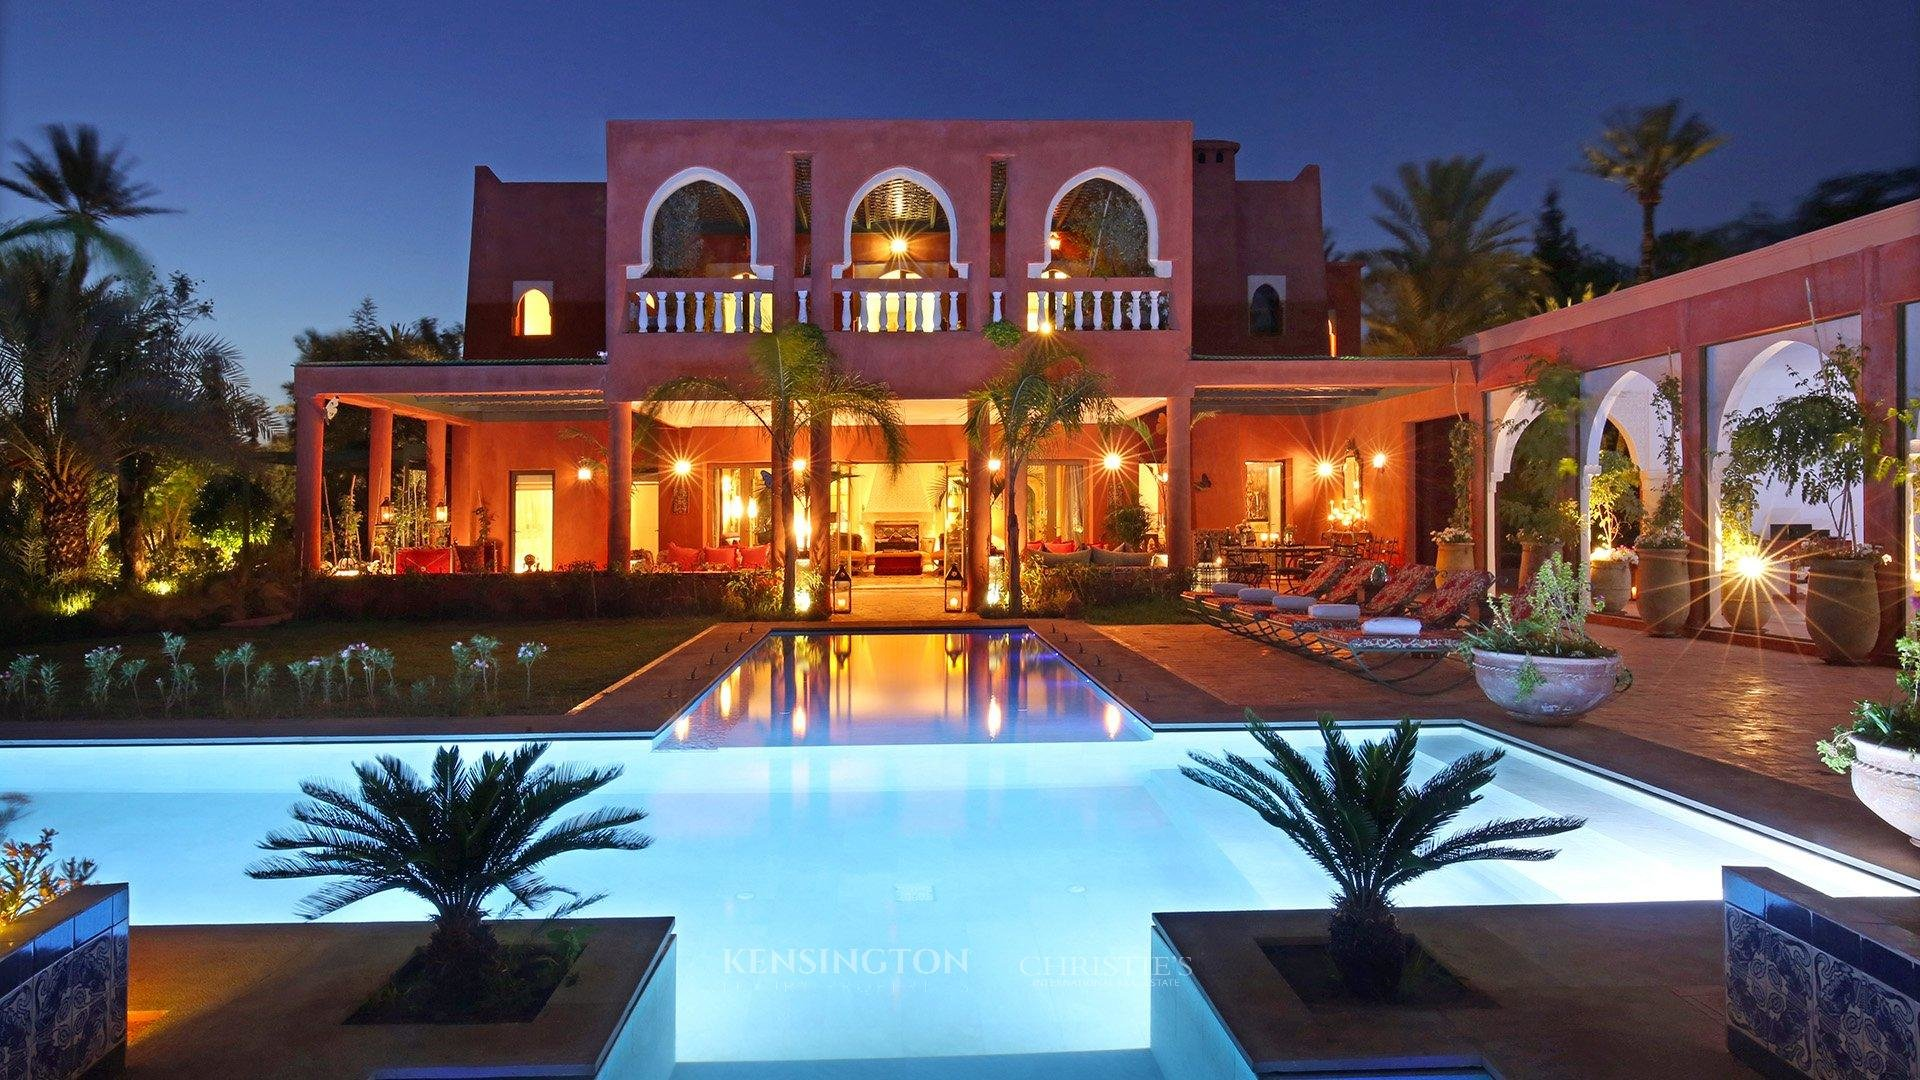 KPPM00835: Villa Happy Luxury Villa Marrakech Morocco